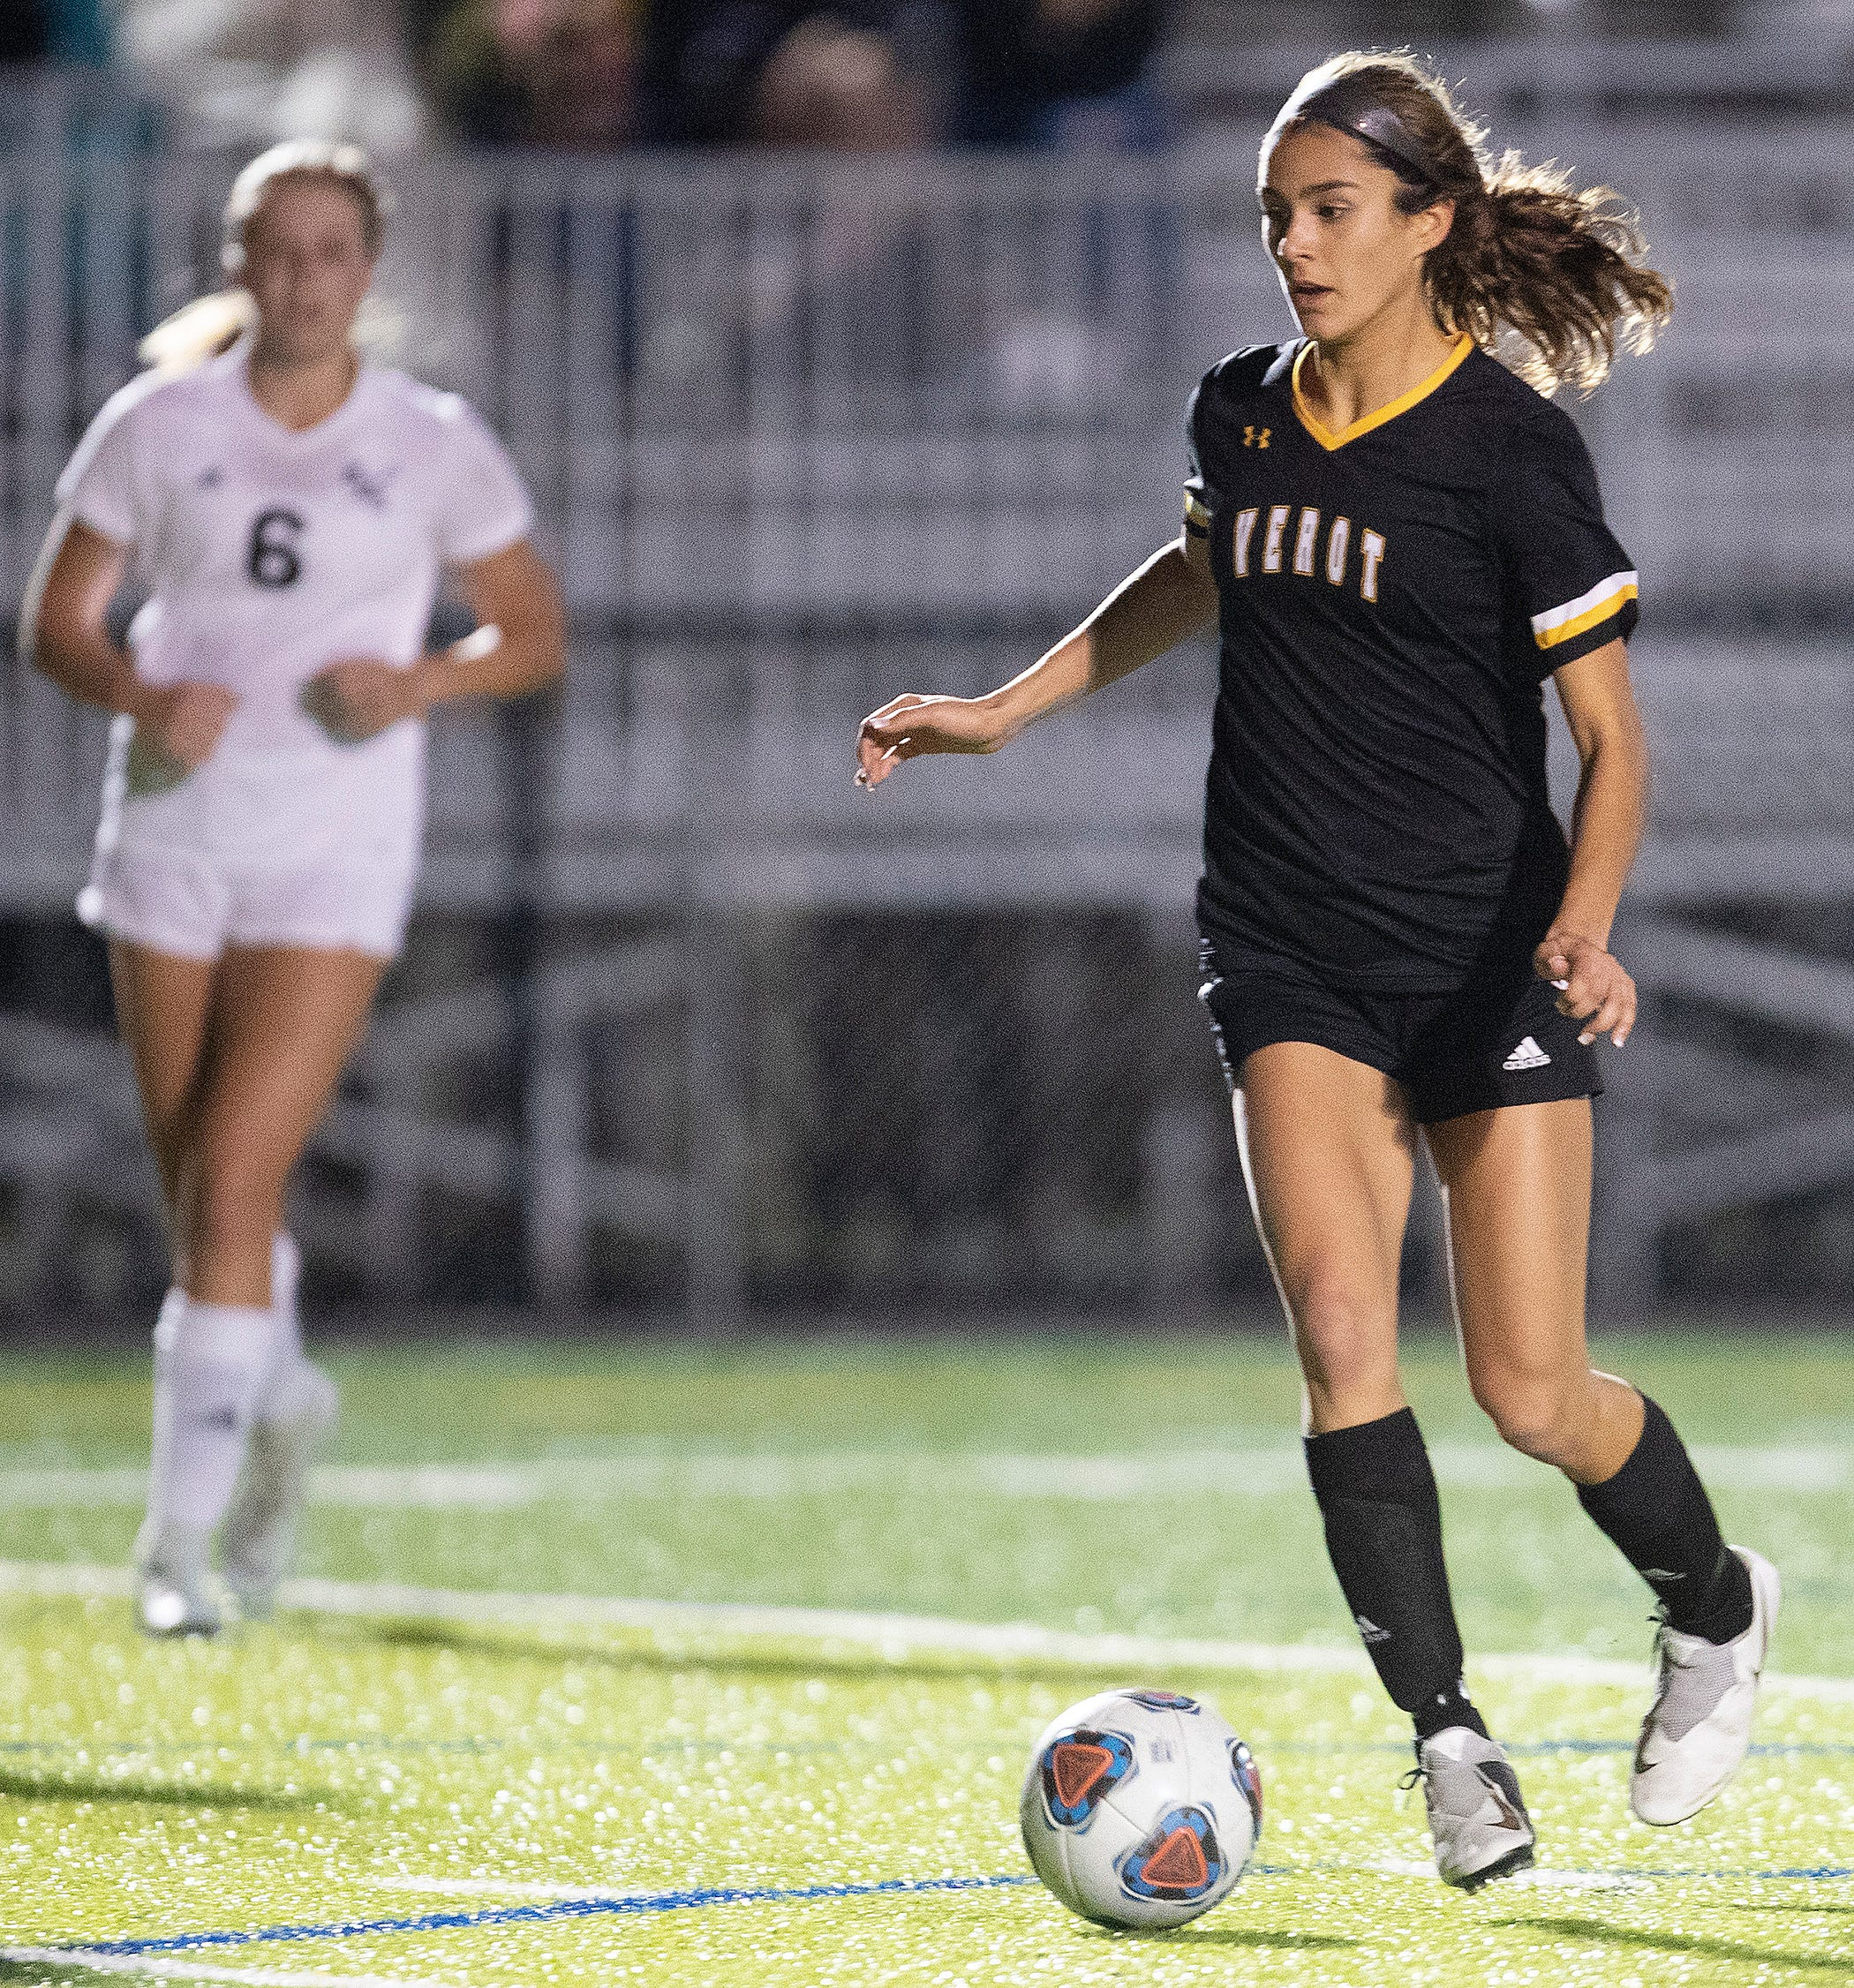 Bishop Verot High School's Nina Gulati fields a pass against Mariner on Wednesday at Bishop Verot in Fort Myers. Verot and Mariner tied 1-1.